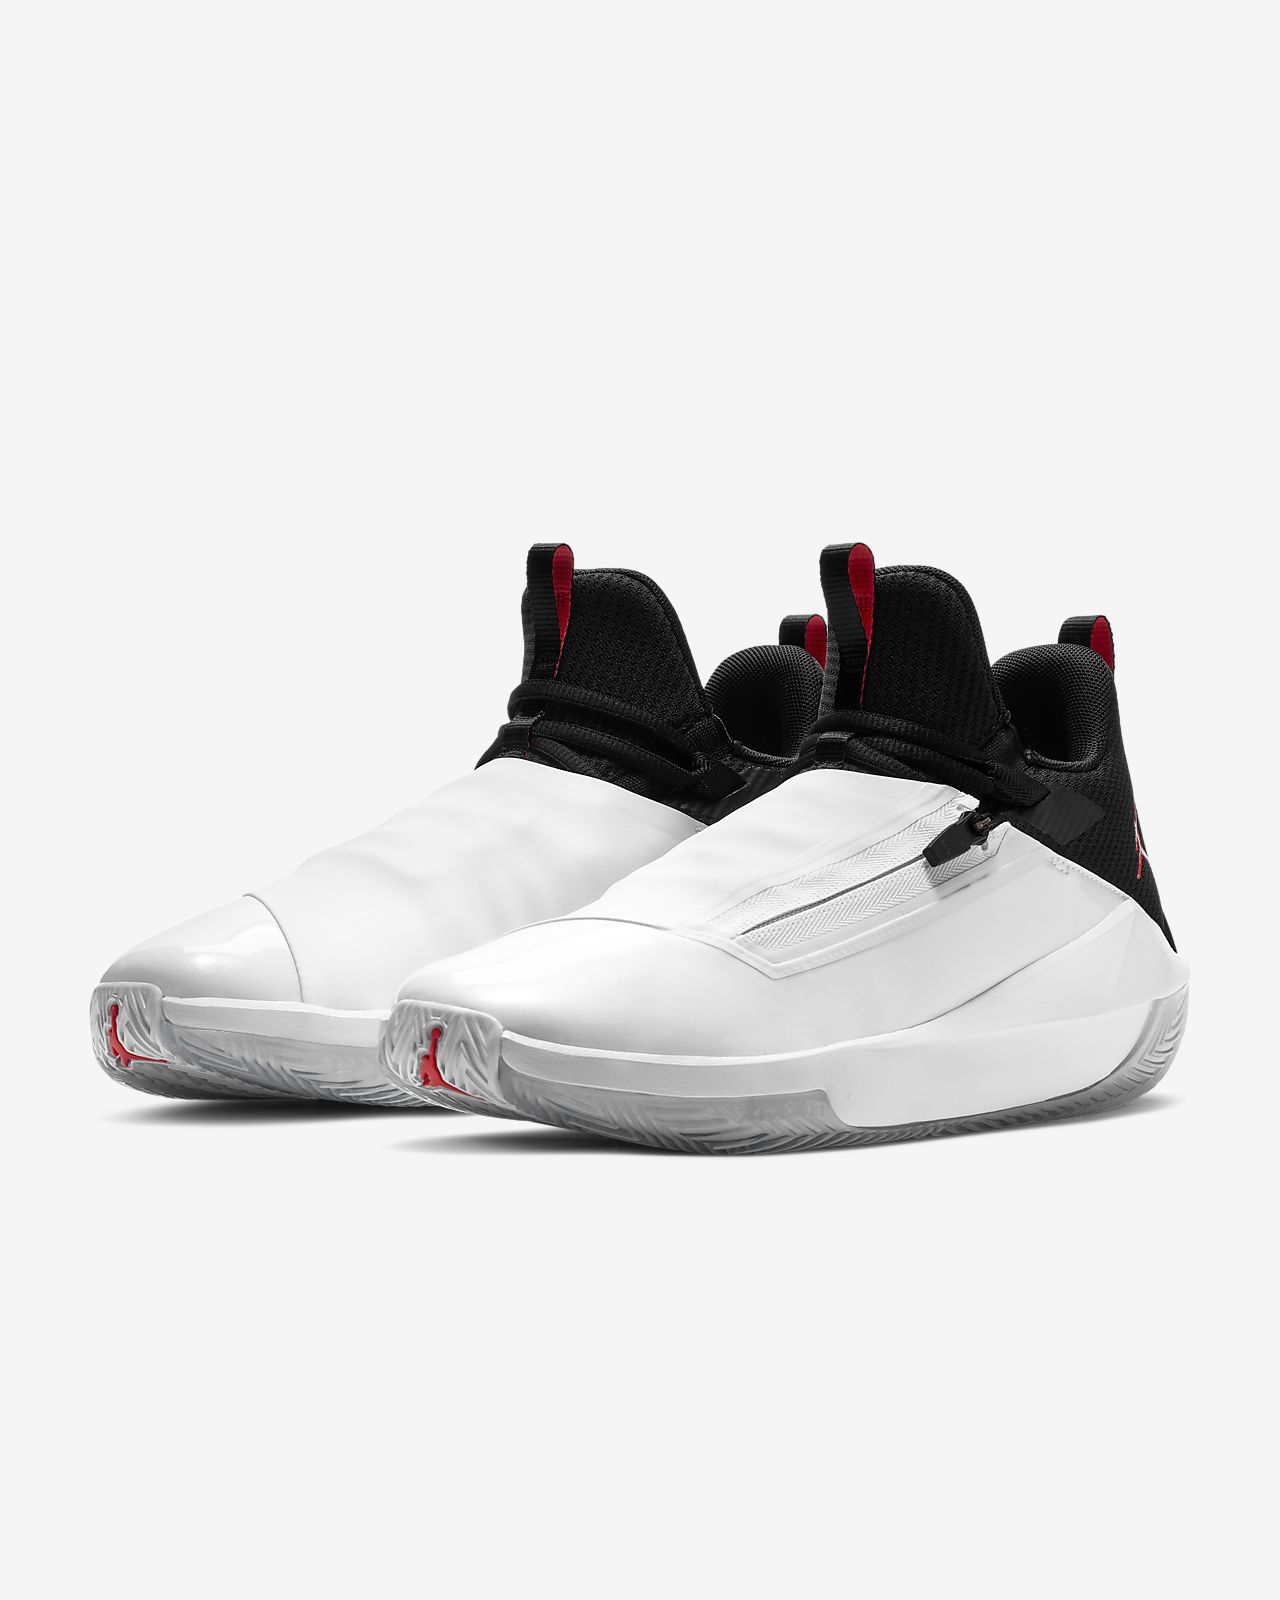 best website 514a5 e8fc1 ... Jordan Jumpman Hustle Men s Basketball Shoe